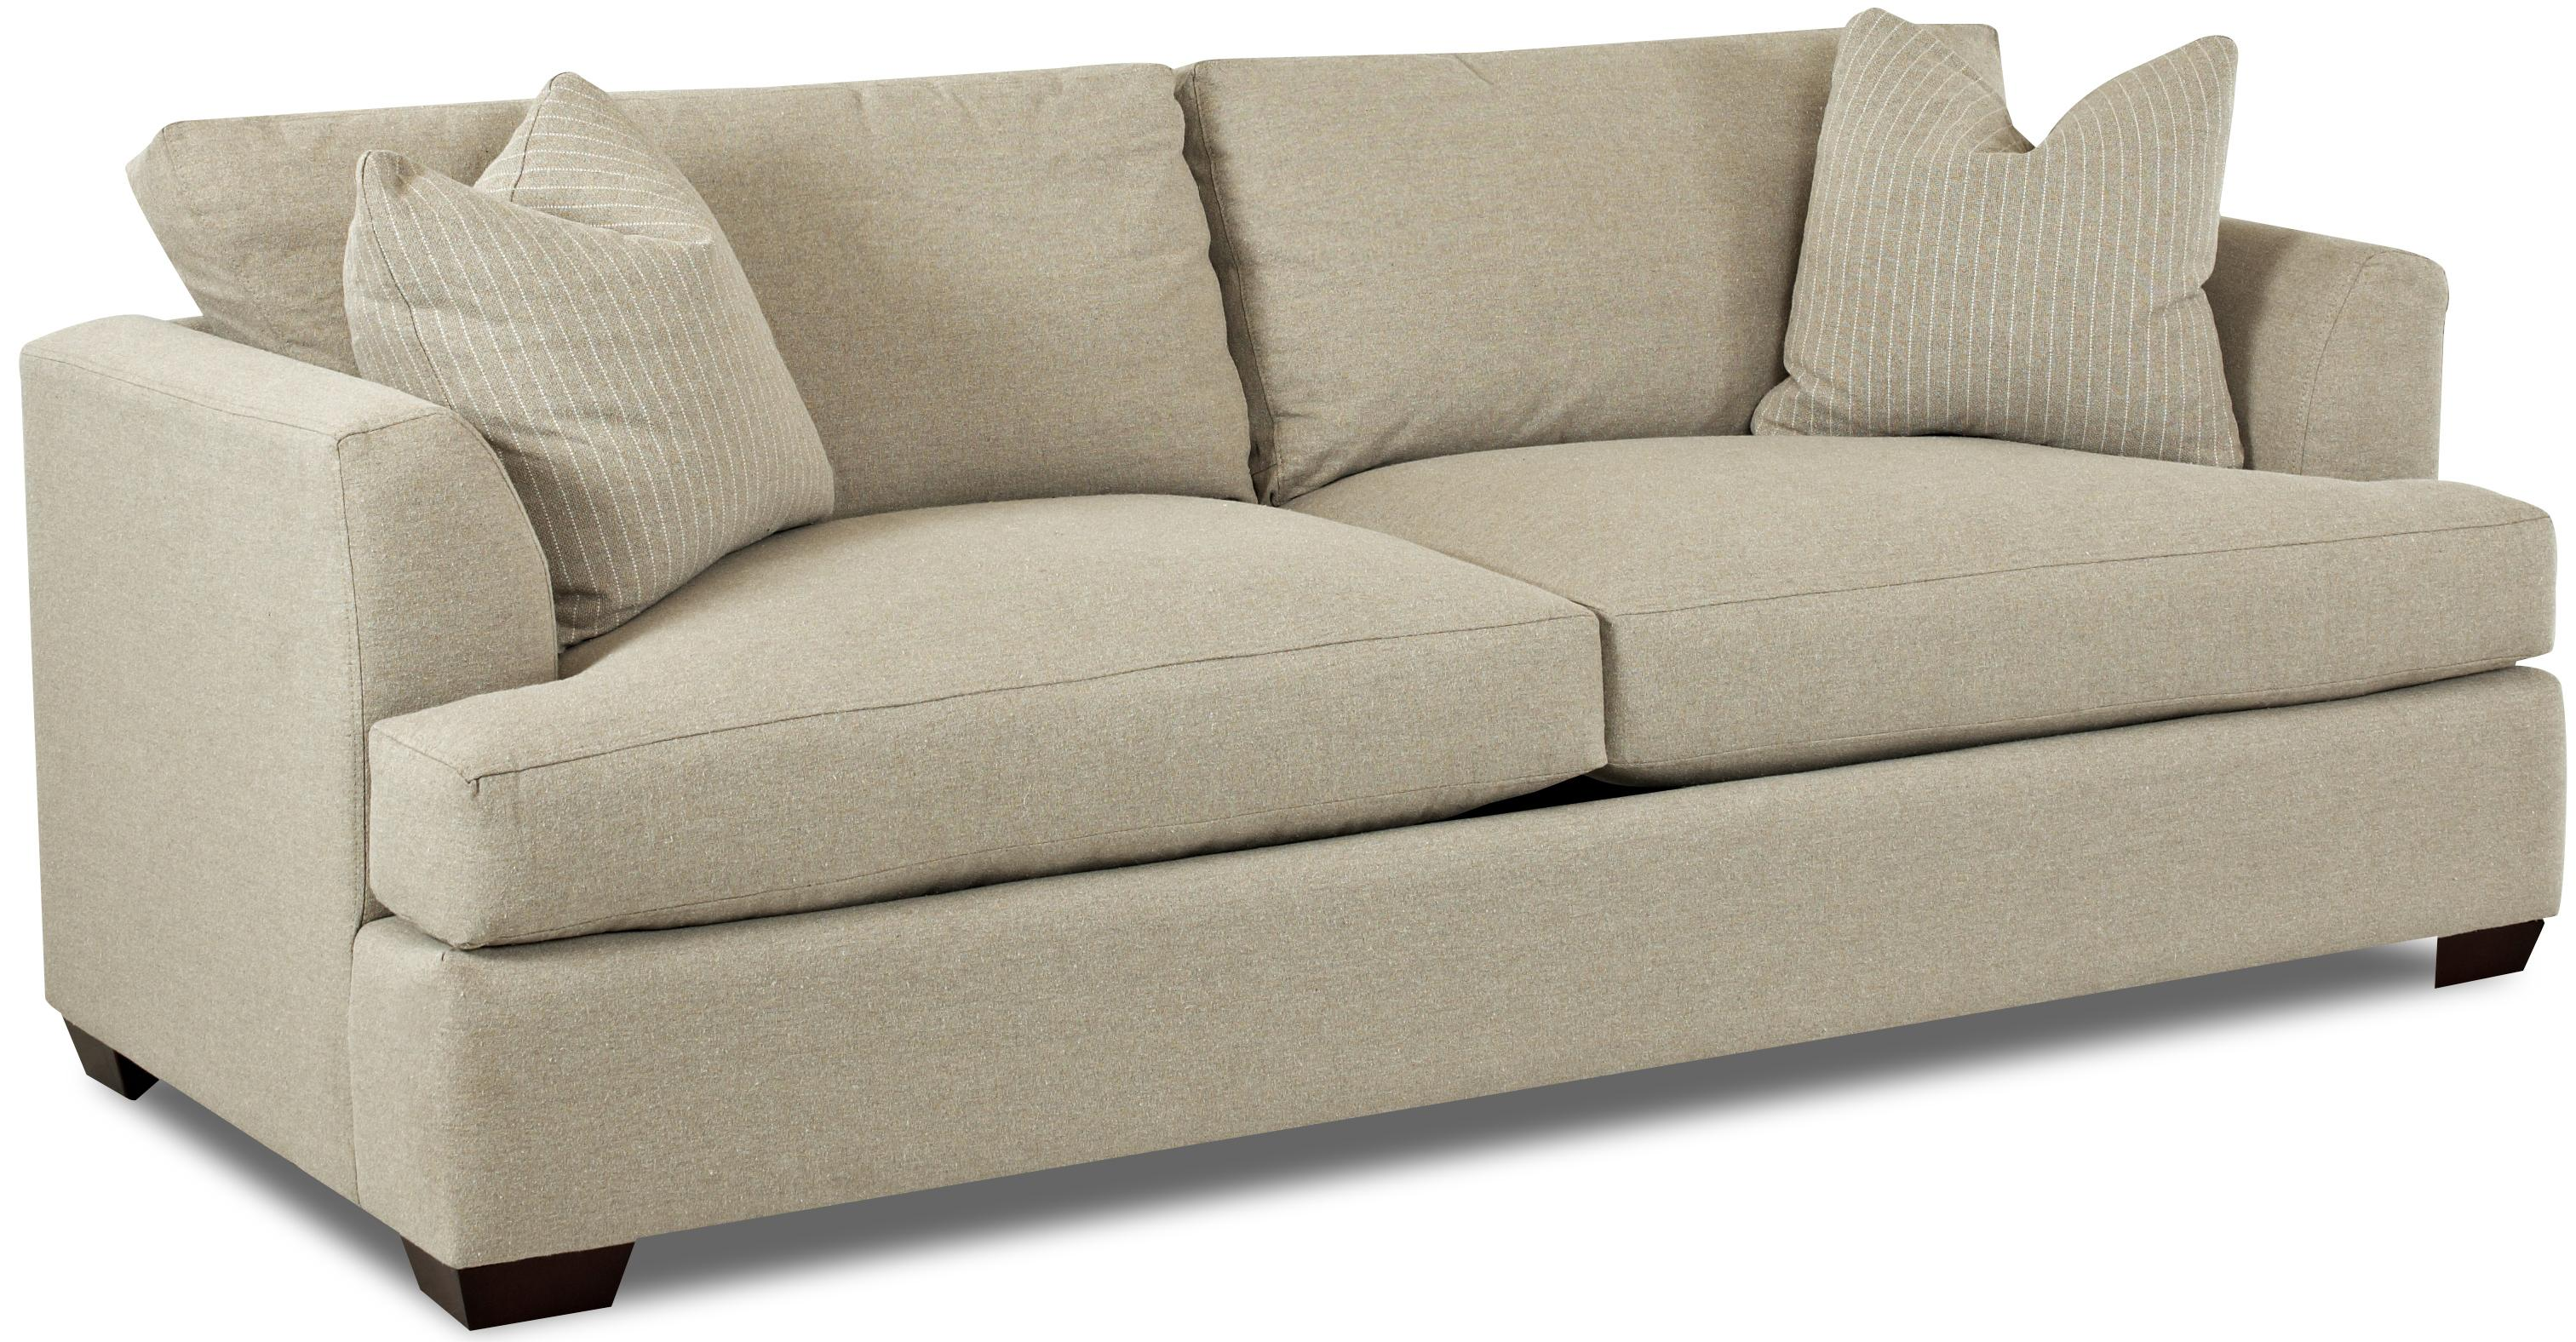 Contemporary sofa with flared track arms by klaussner for Klaussner sofa